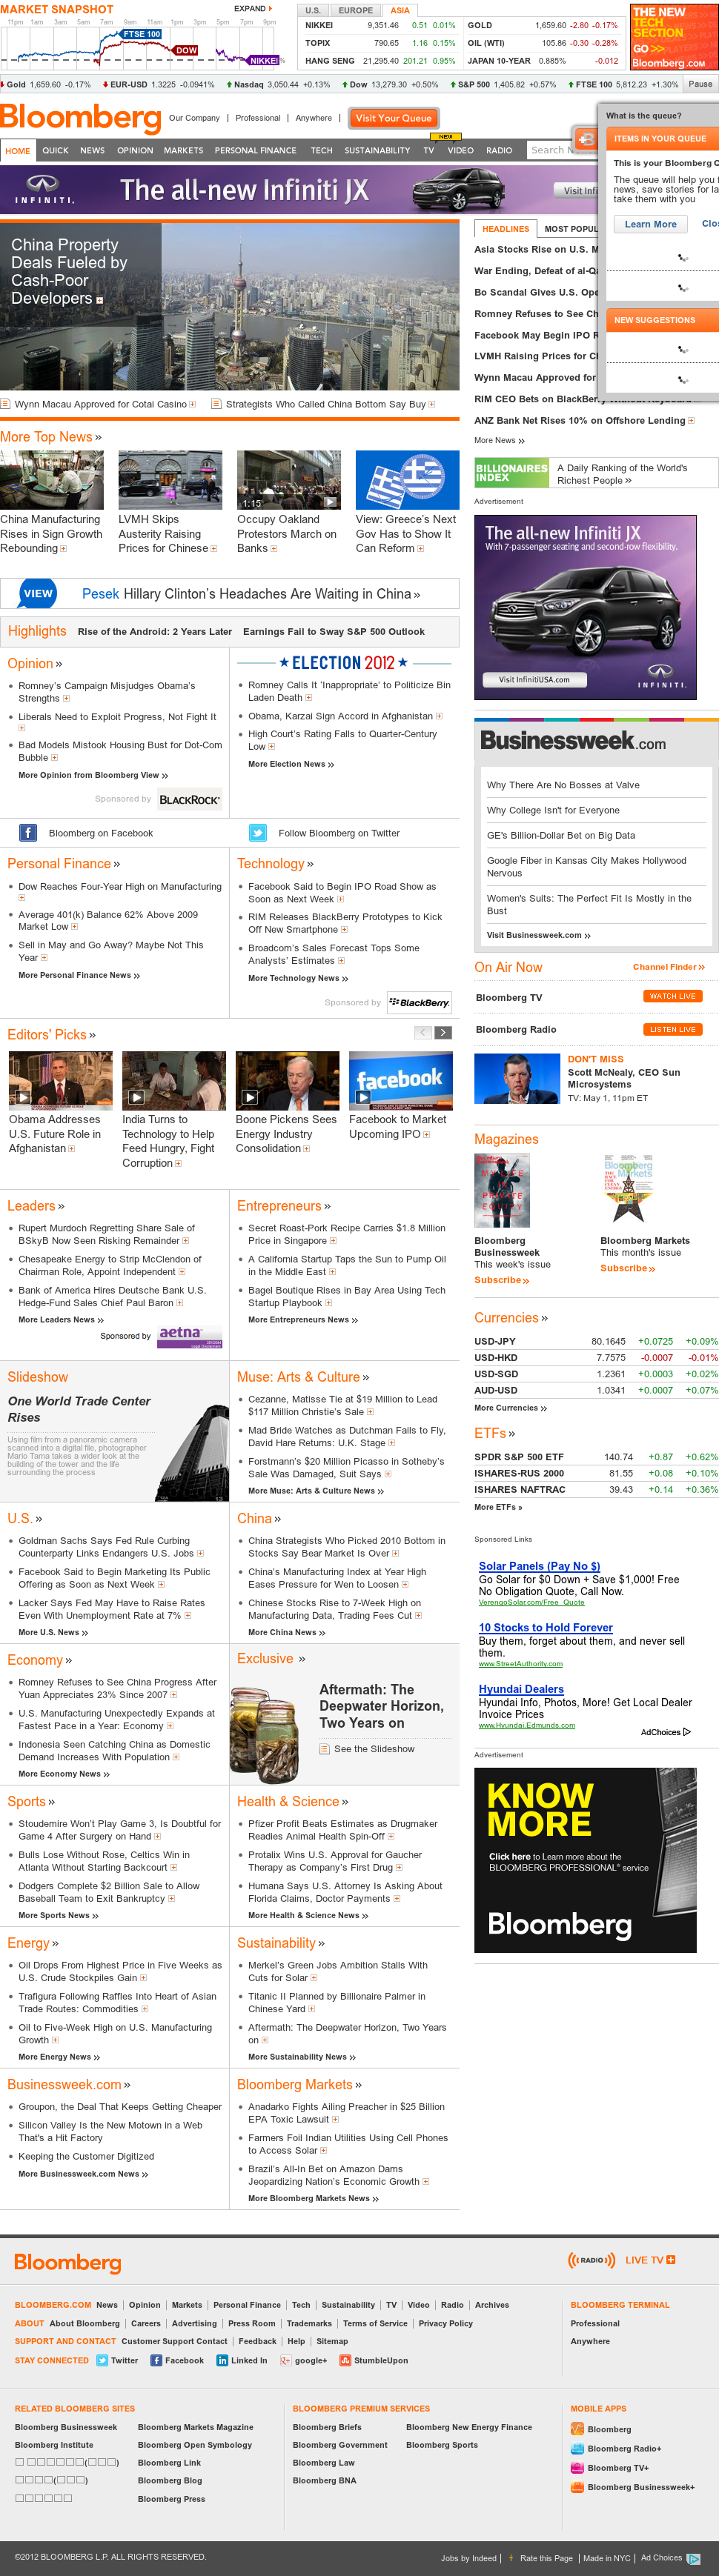 Bloomberg at Wednesday May 2, 2012, 3:01 a.m. UTC